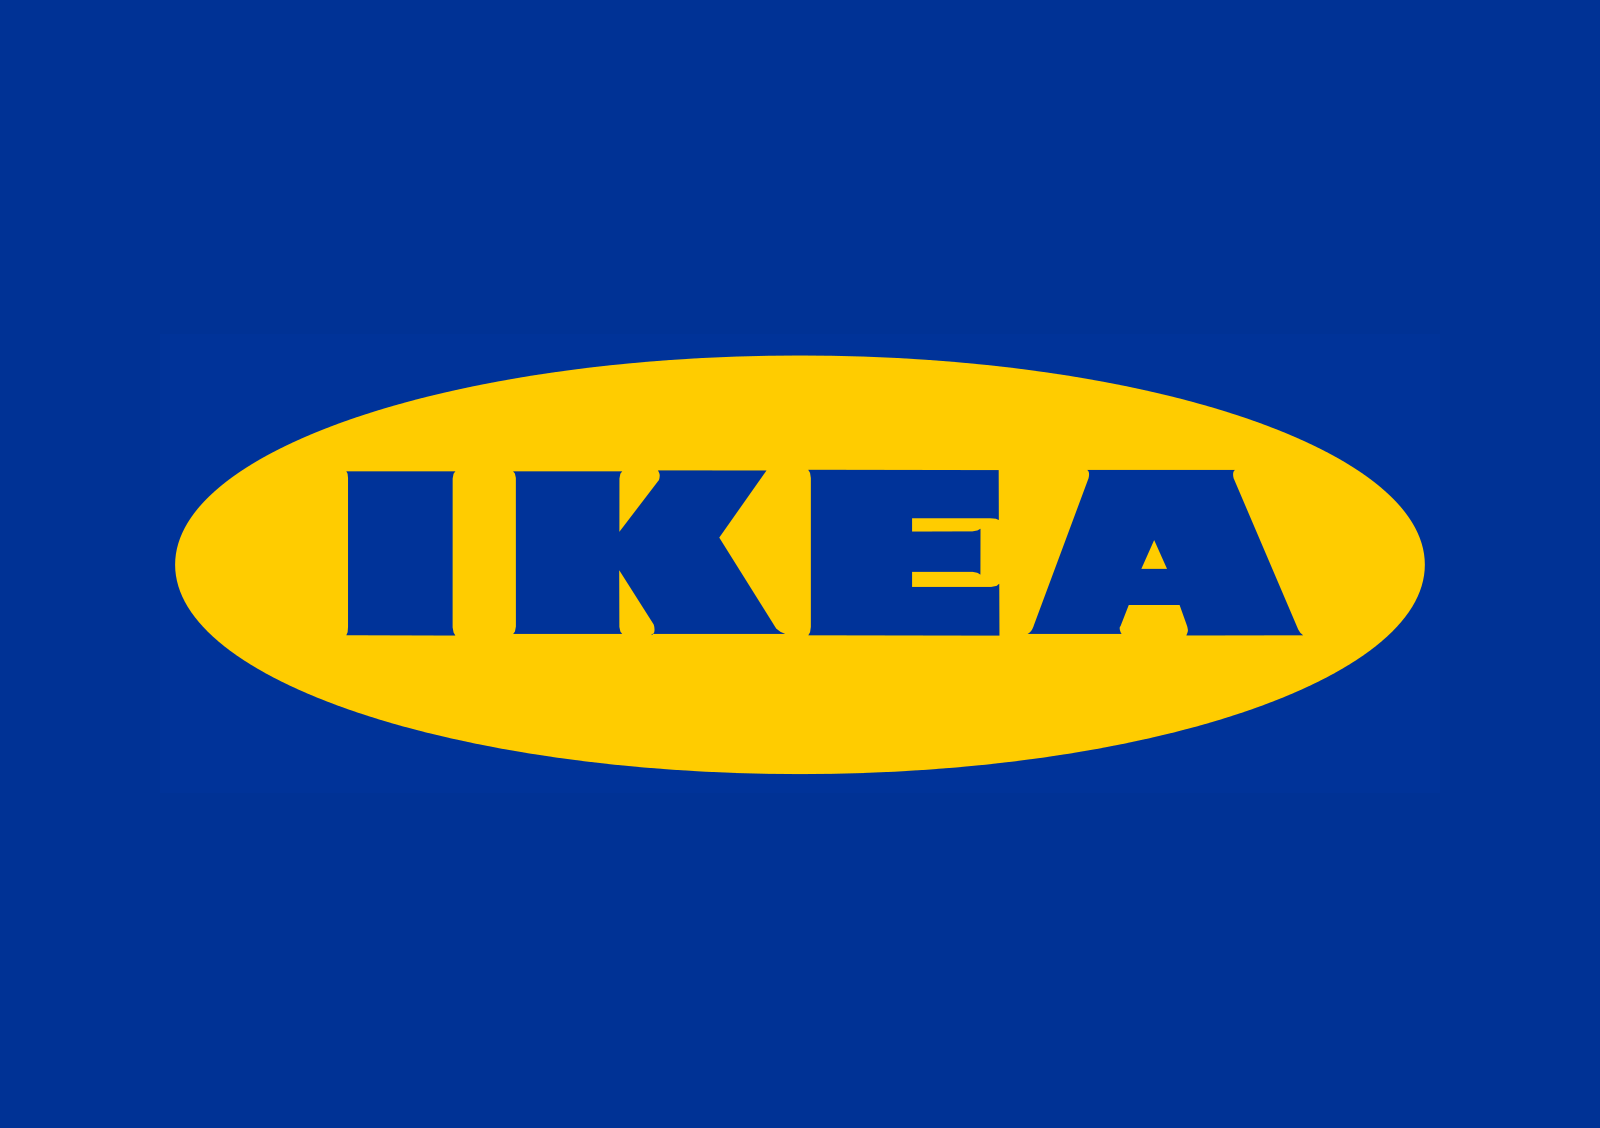 5 lessons to learn from Ikea's marketing